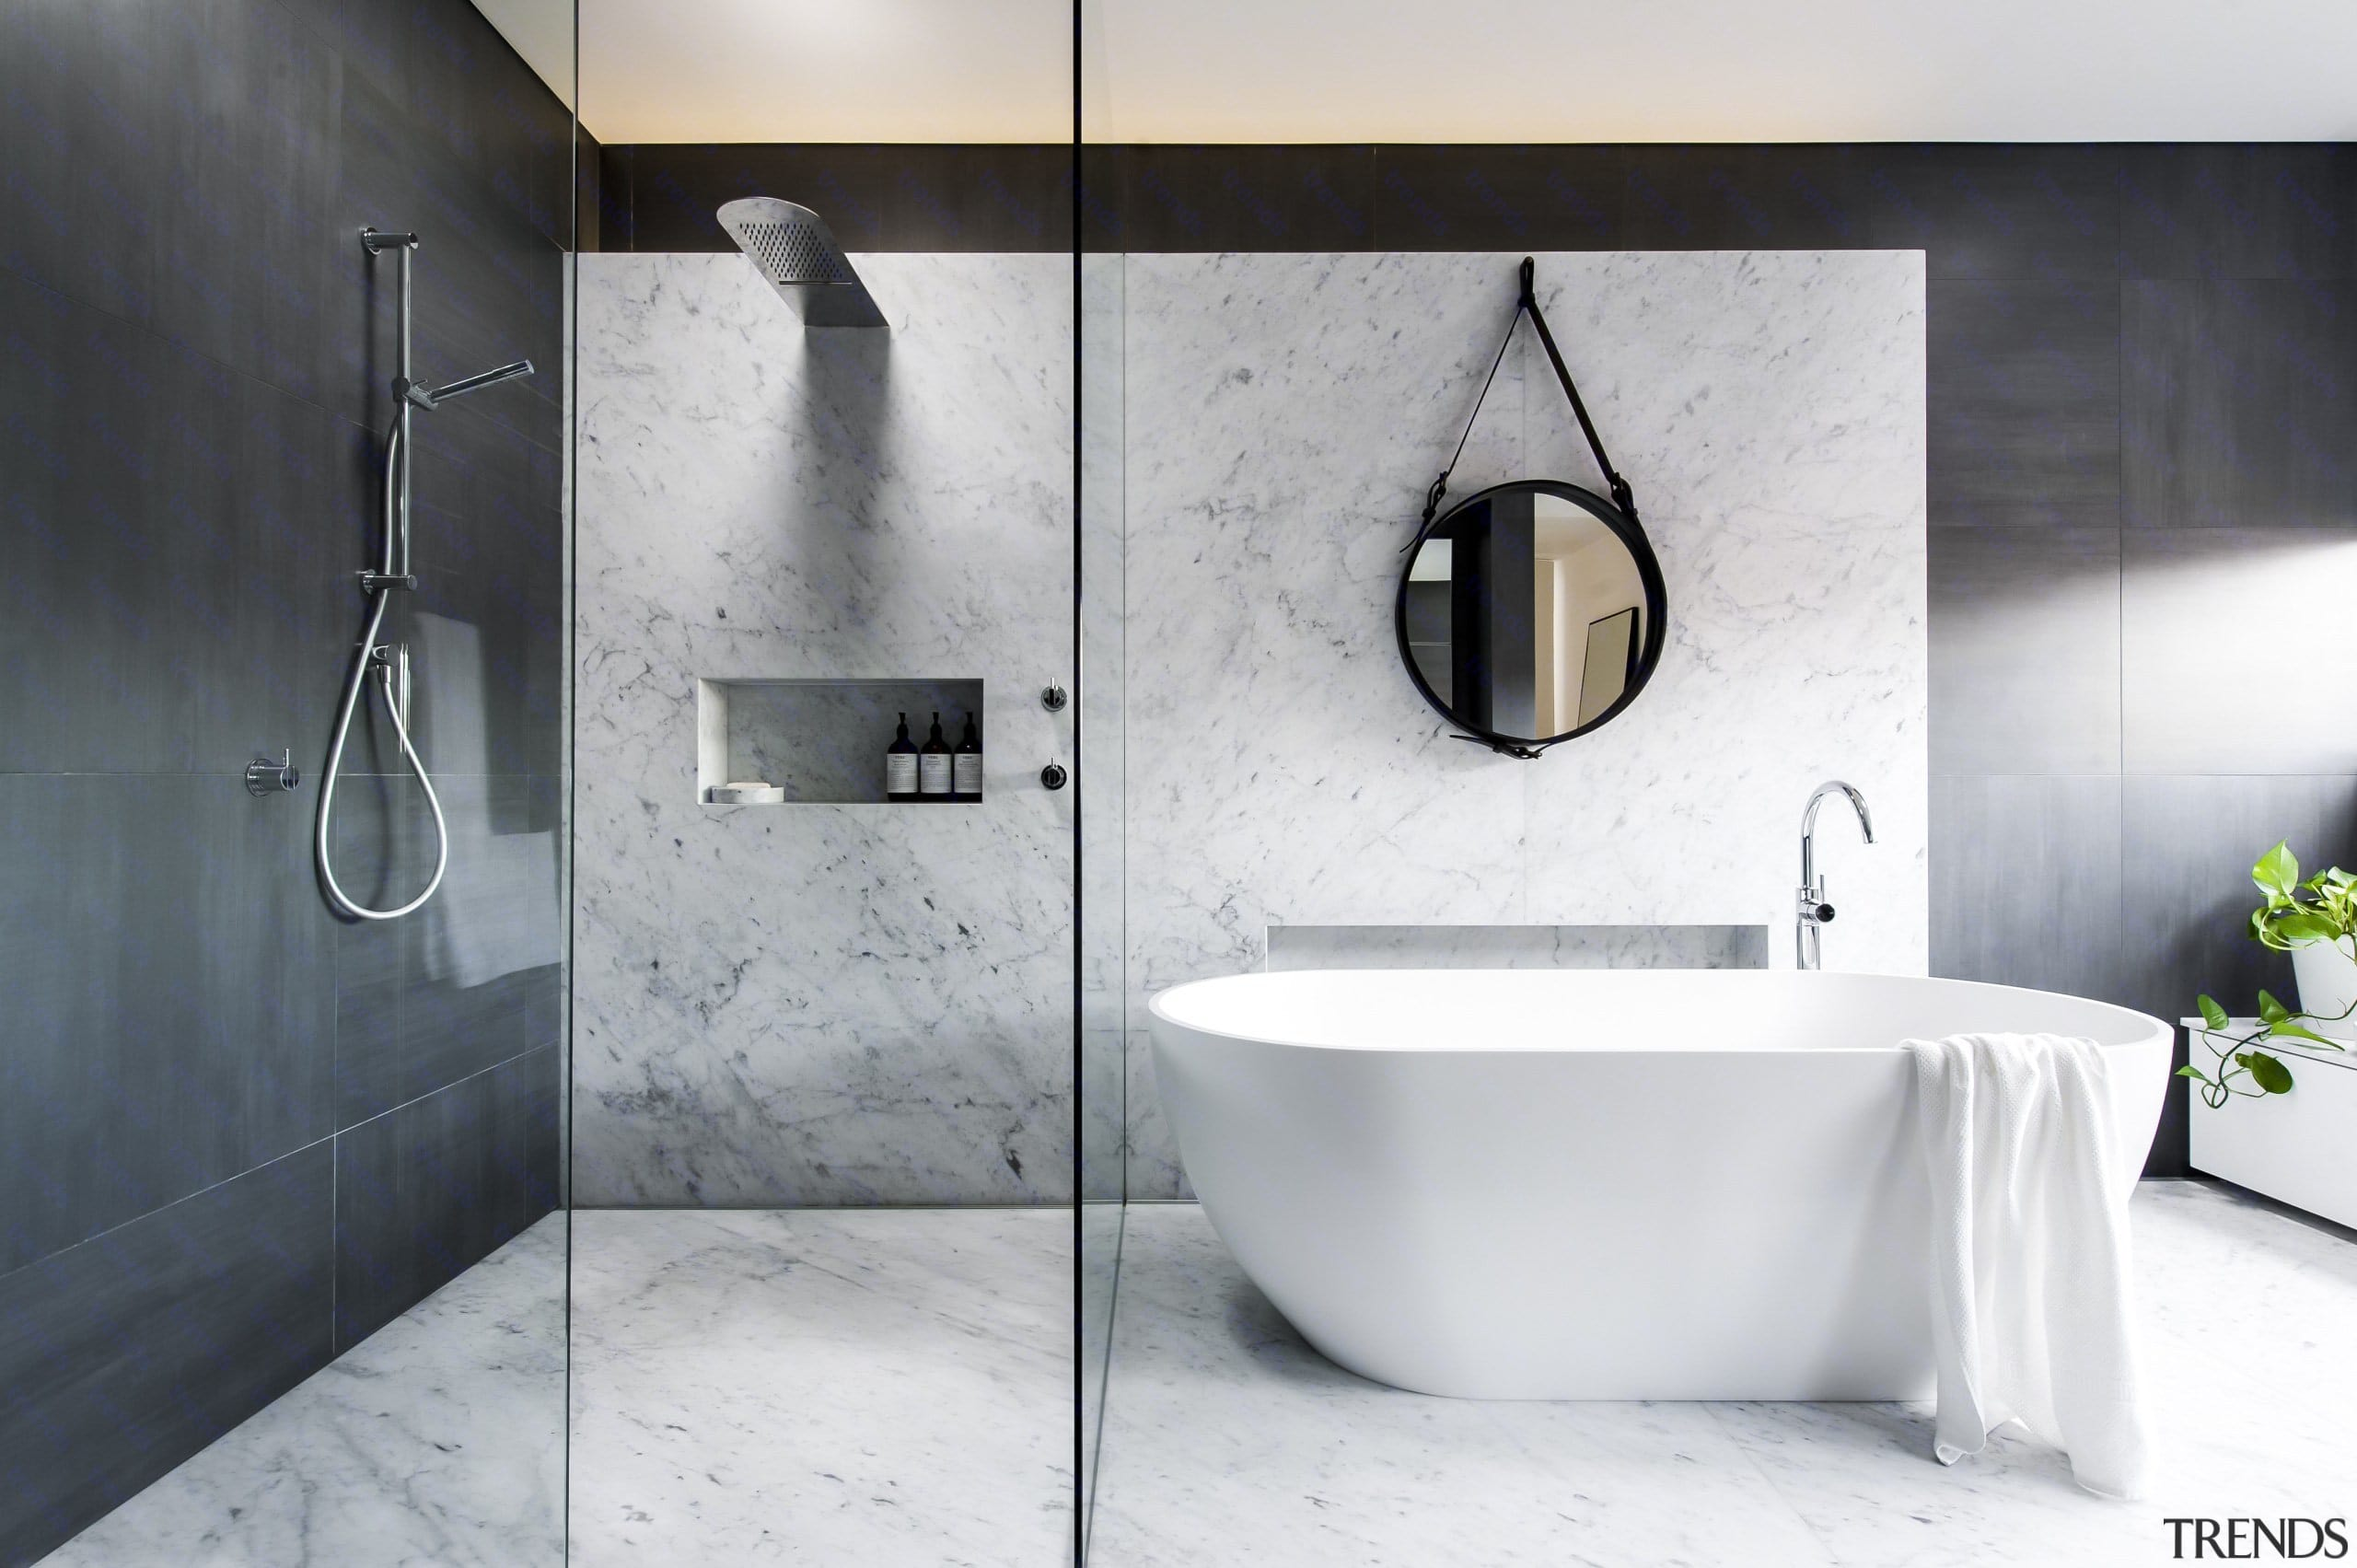 See more of this bathroom hereDesigned by bathroom, bidet, ceramic, floor, interior design, plumbing fixture, room, tap, tile, white, gray